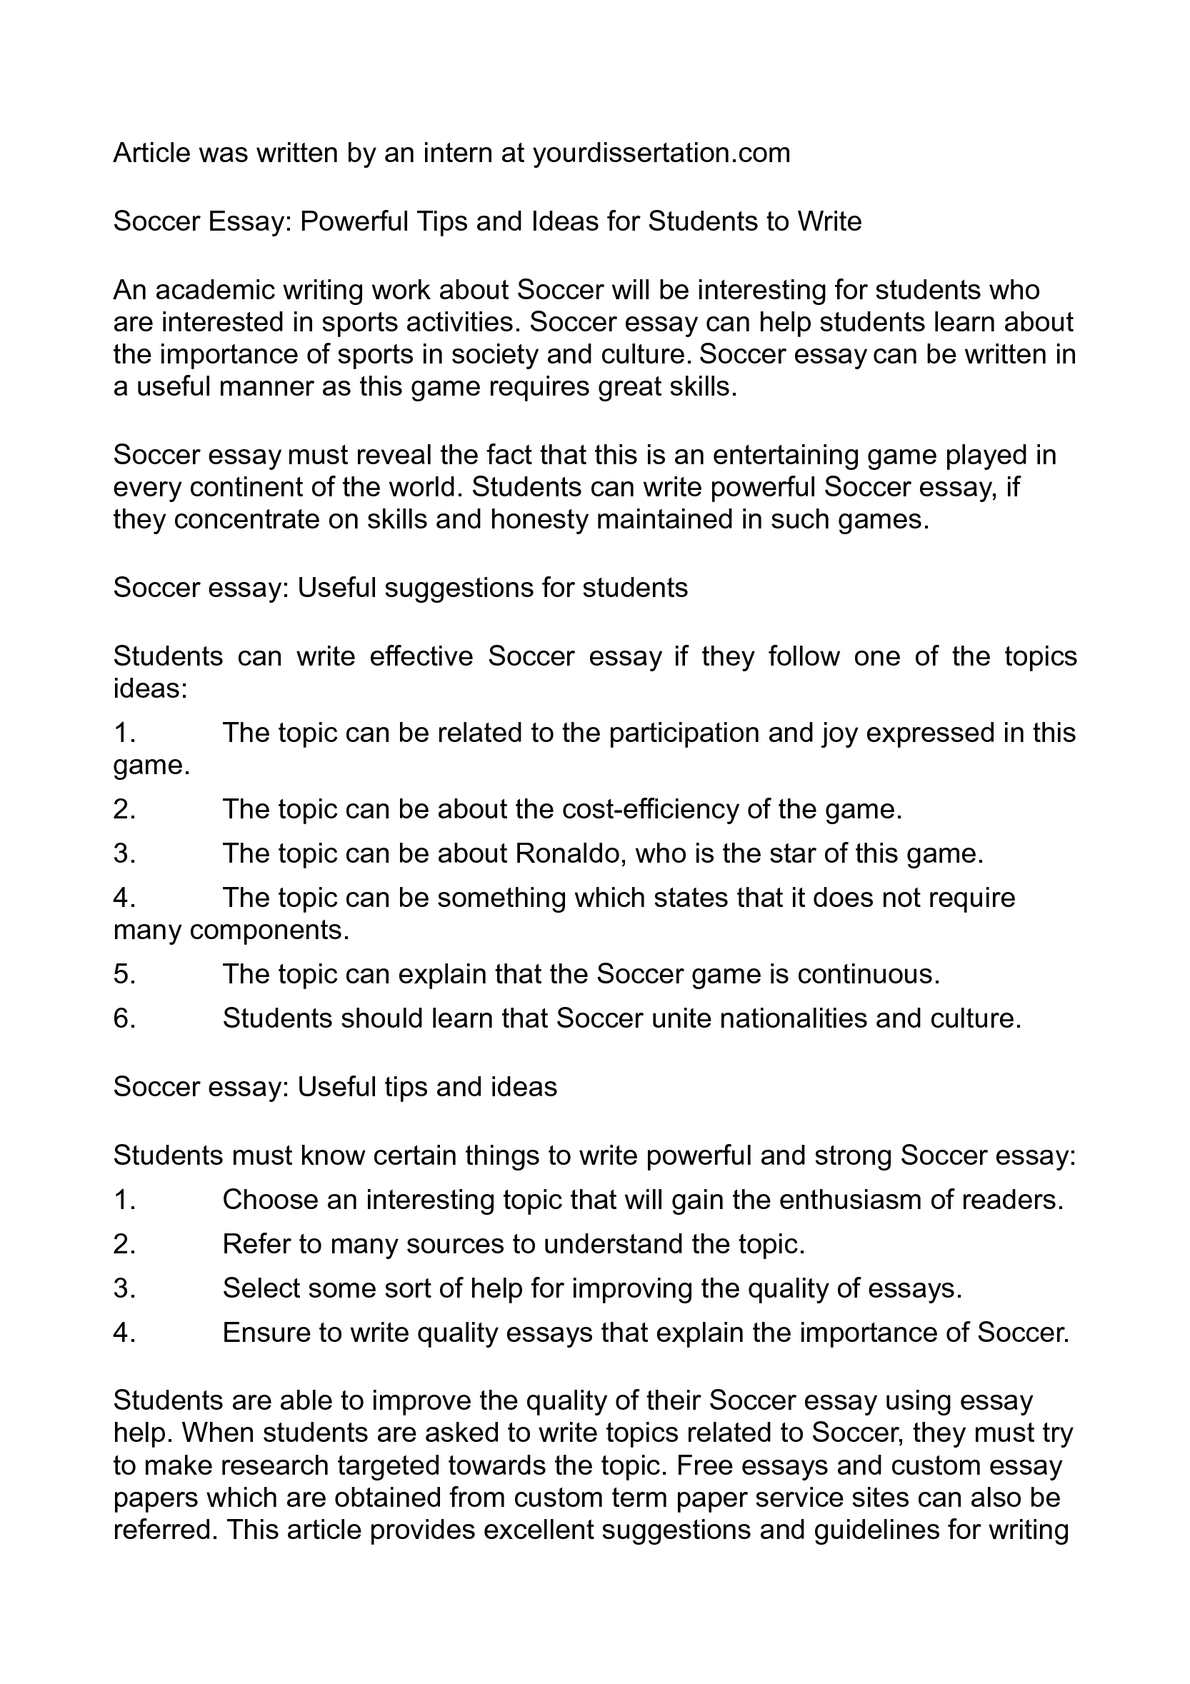 Calam o soccer essay powerful tips and ideas for students to write